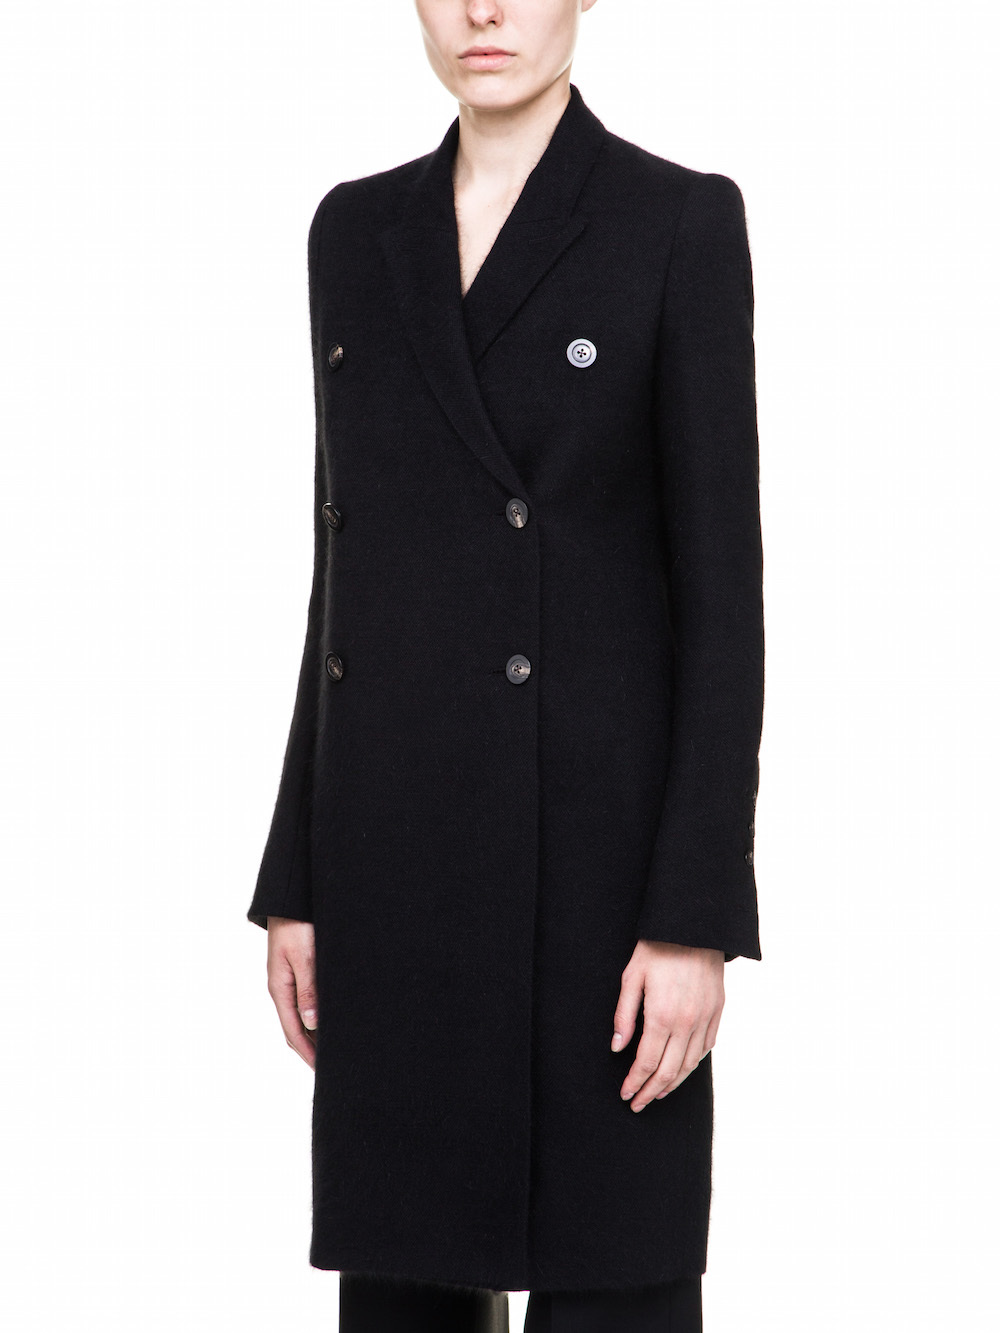 RICK OWENS FALL WINTER PEACOAT IN MOHAIR